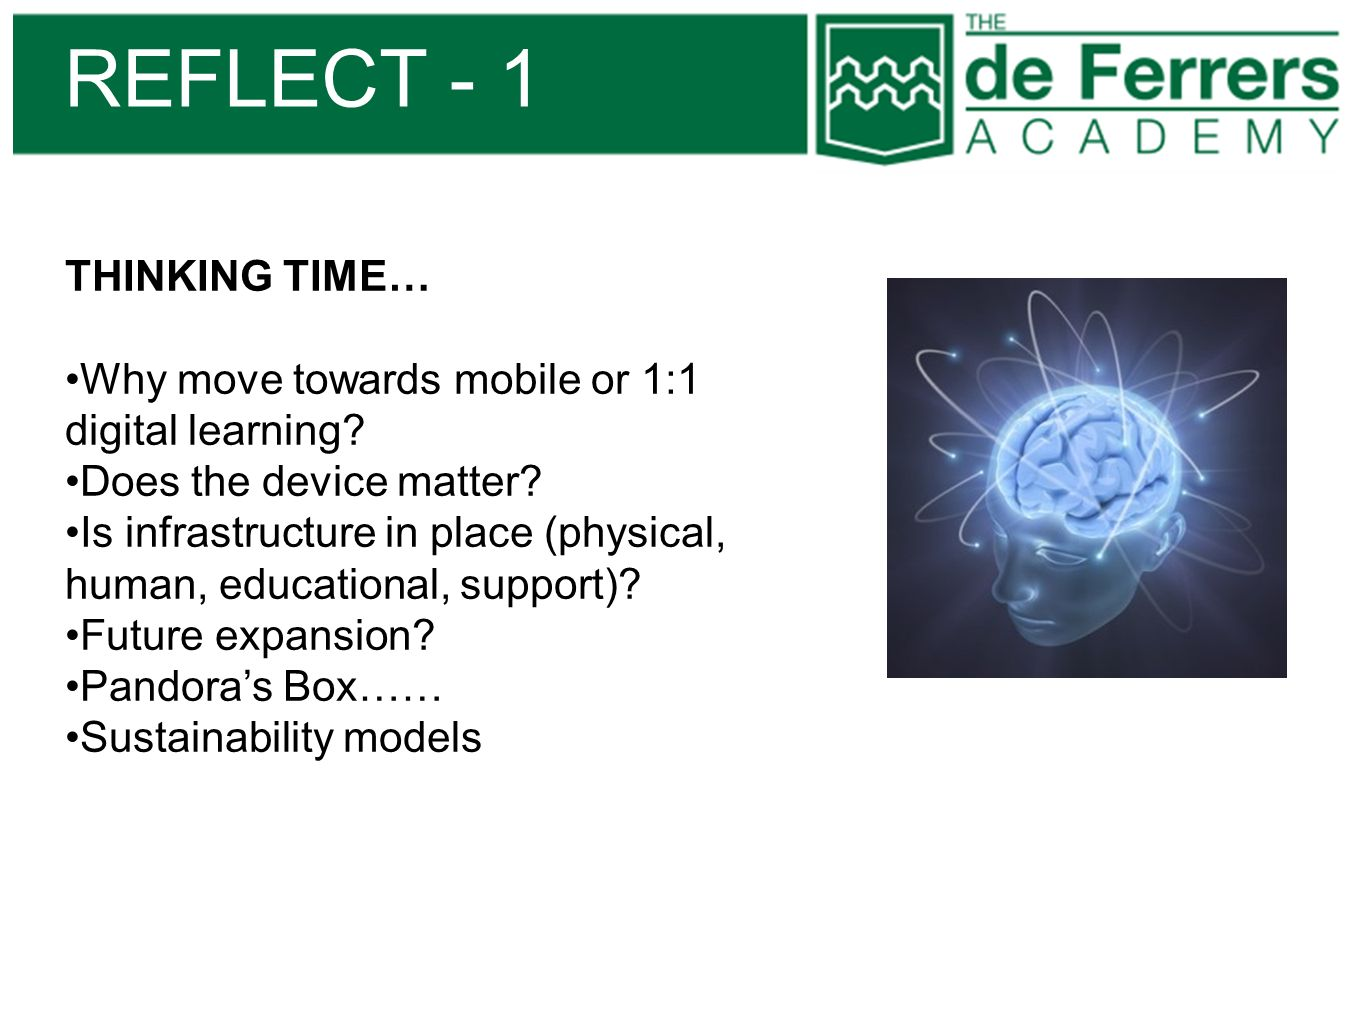 REFLECT - 1 THINKING TIME… Why move towards mobile or 1:1 digital learning? Does the device matter? Is infrastructure in place (physical, human, educa